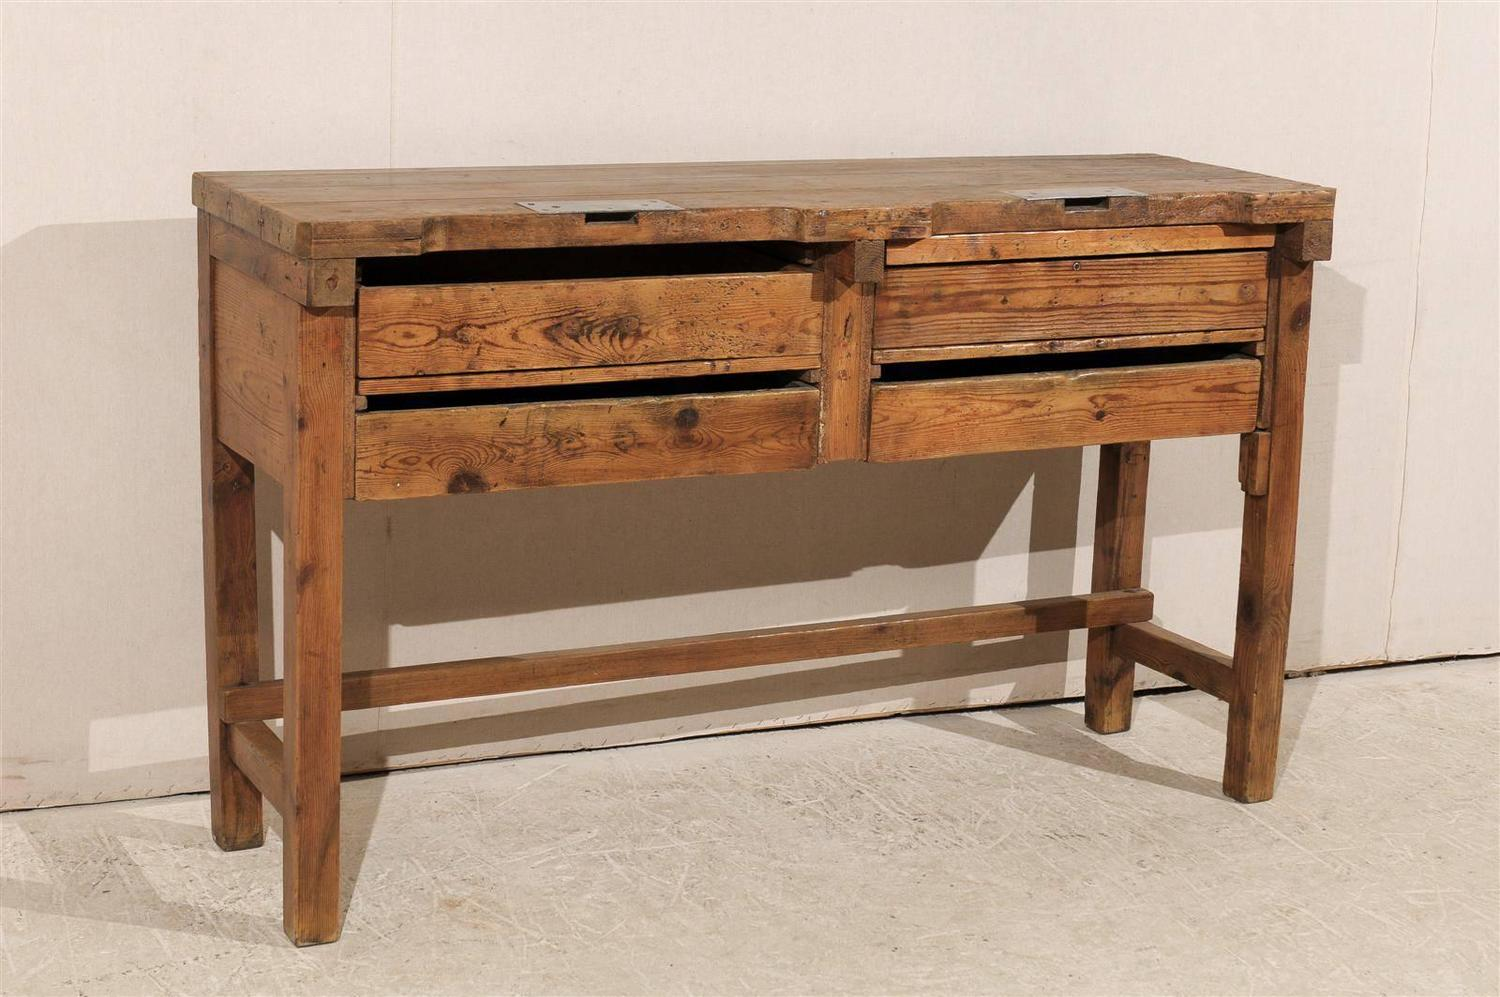 19th Century Jeweler 39 S Table Or Work Bench For Sale At 1stdibs